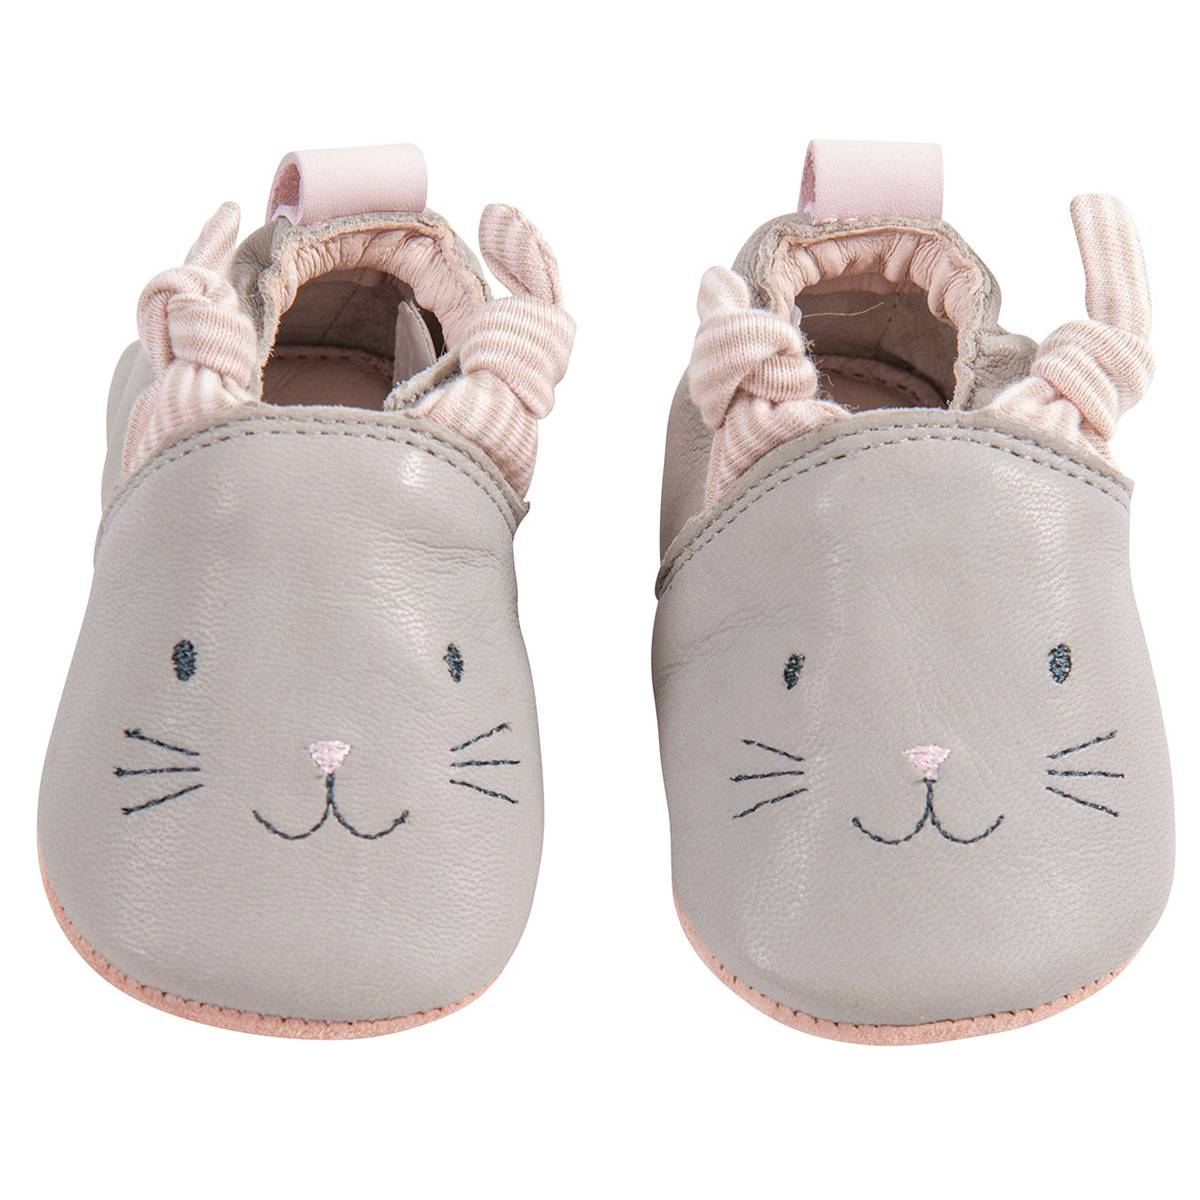 Moulin Roty Chaussons Cuir Gris Les Petits Dodos - 20/21